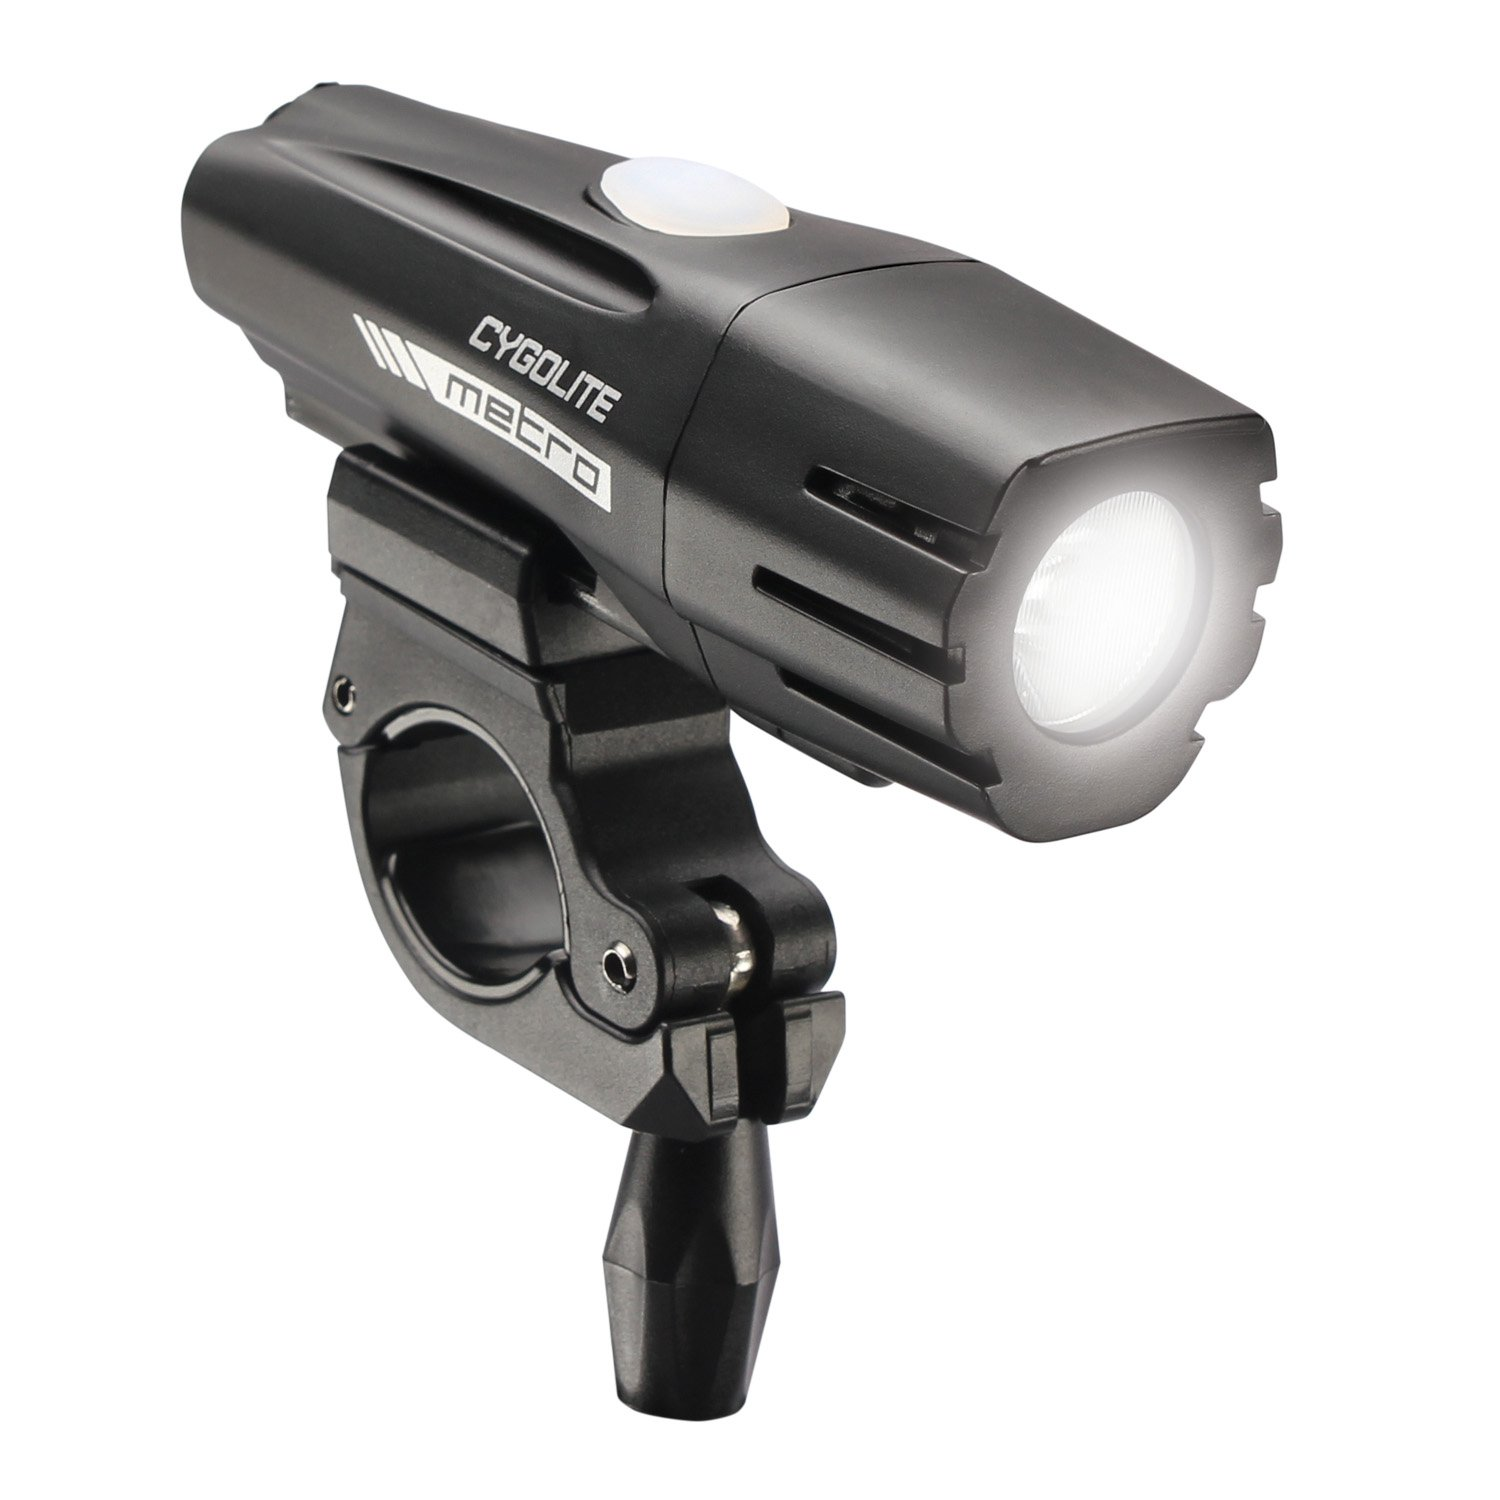 Cygolite Metro 500 USB Rechargeable Bike Light, Powerful 500 Lumen Bicycle Headlight for Road Cycling and Commuters, 6 Different Lighting Modes for Day and Night Safety.